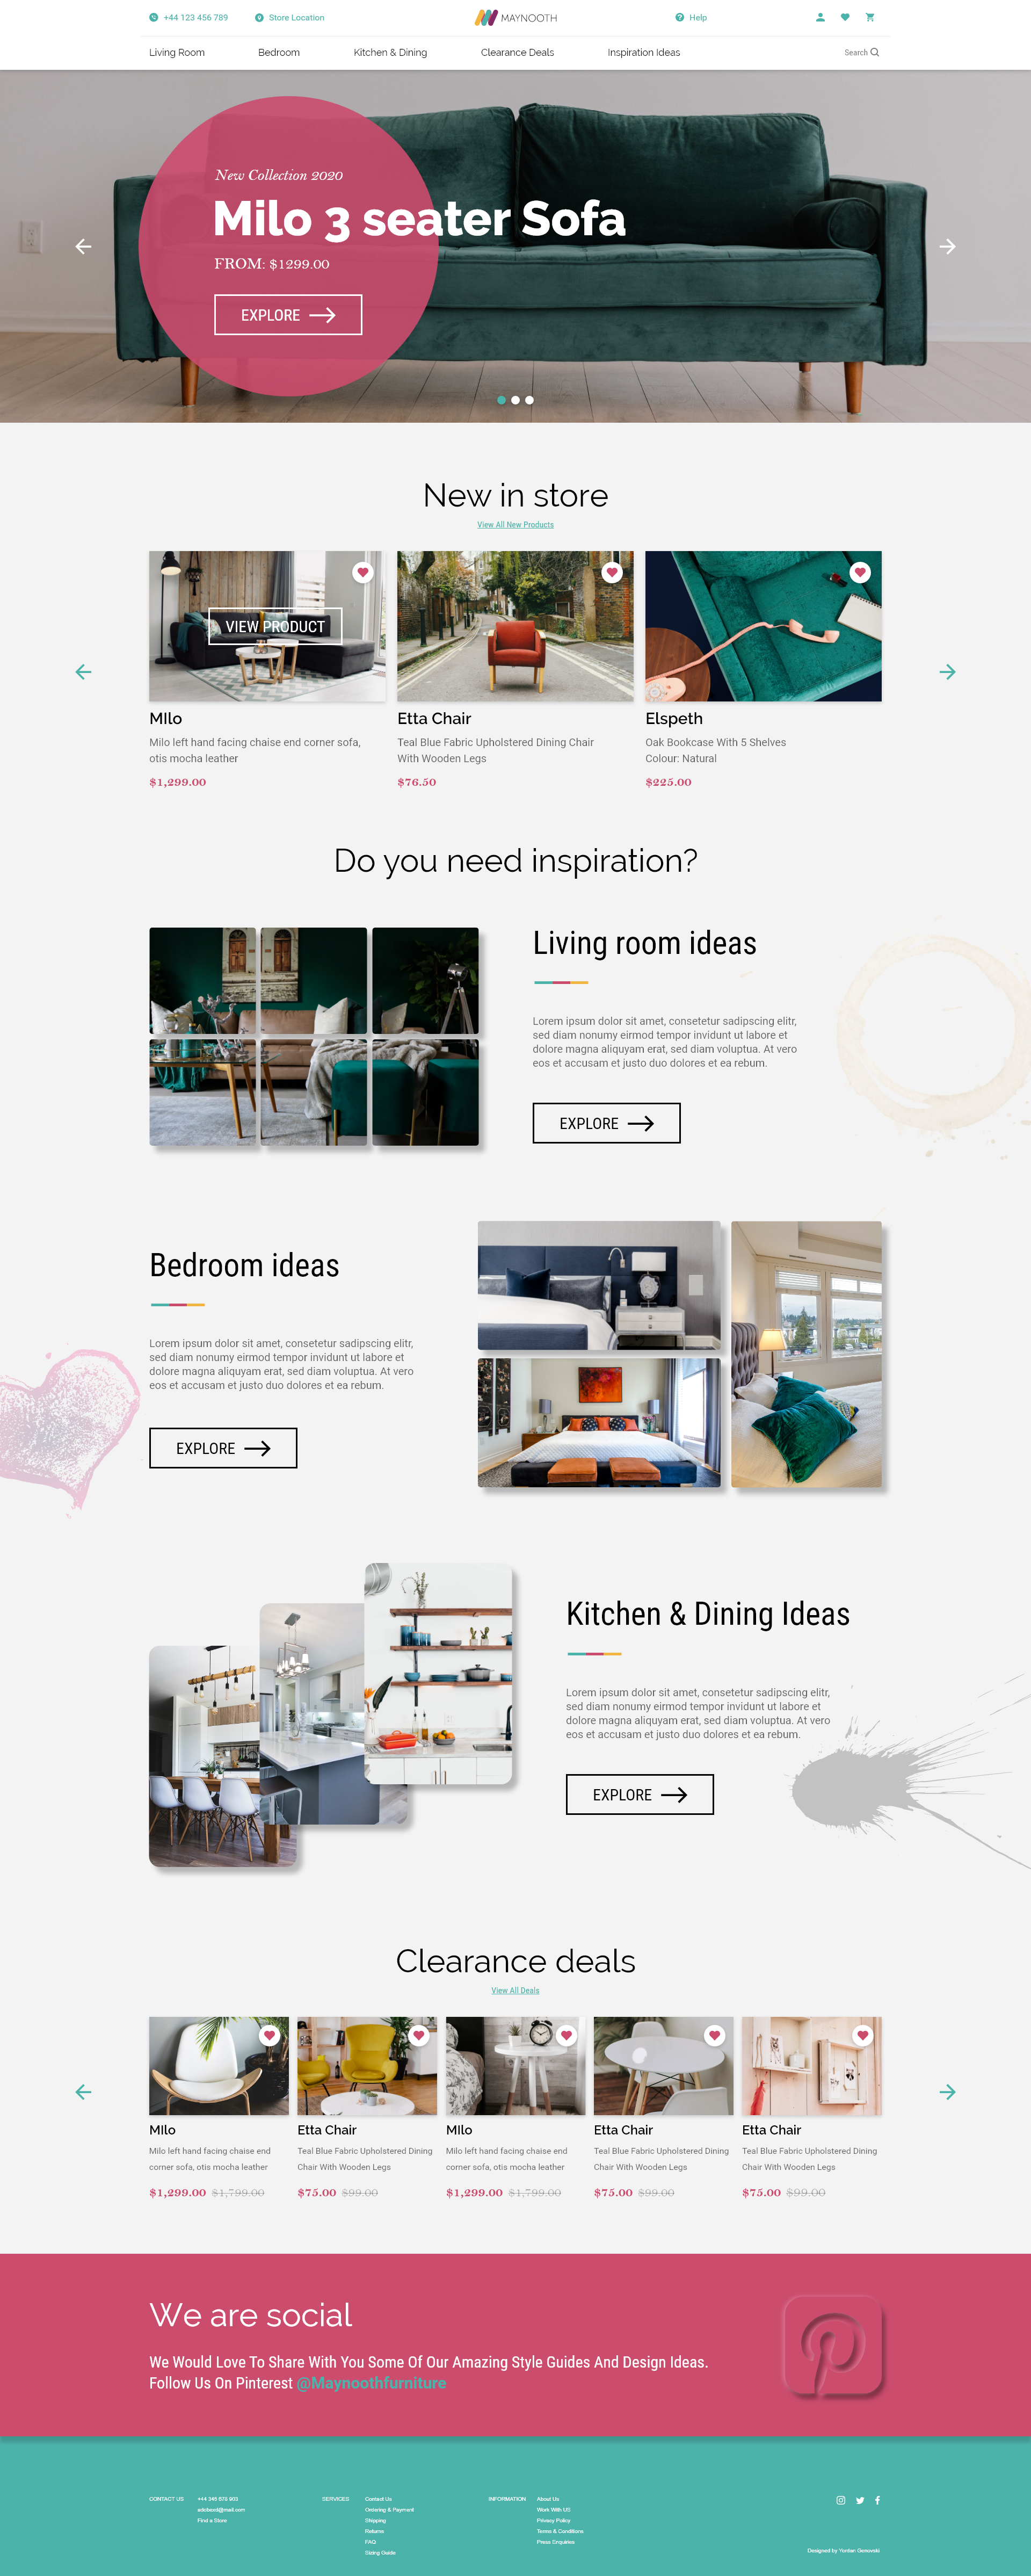 ui design home page maynooth